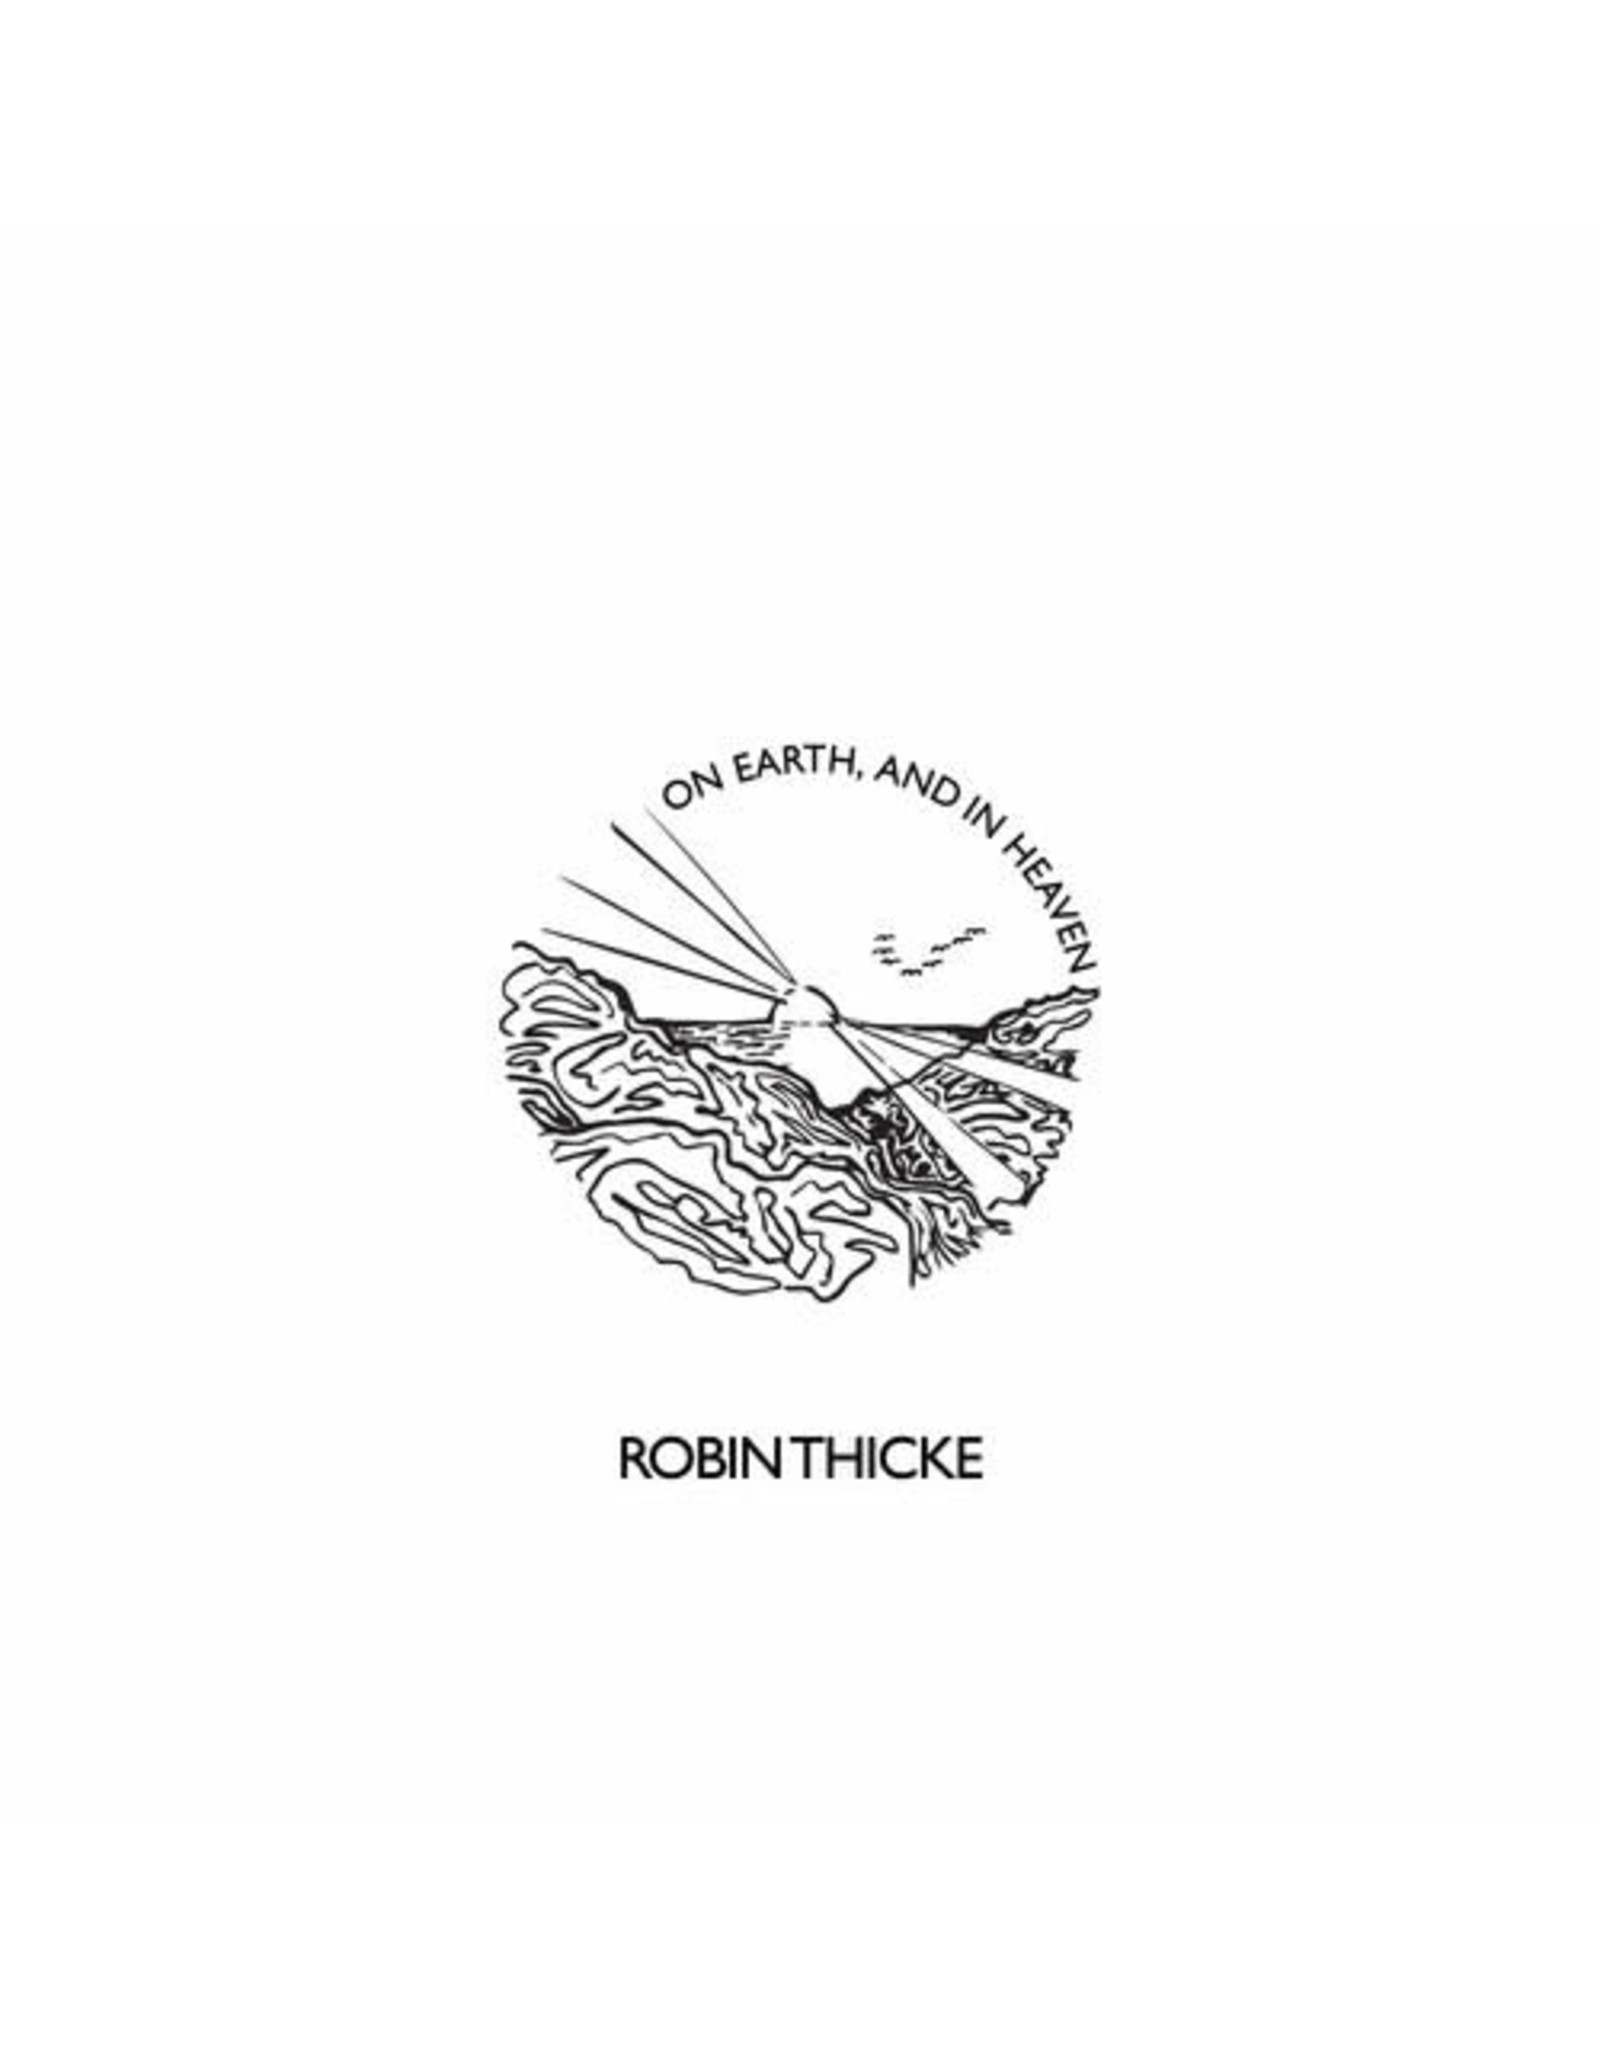 New Vinyl Robin Thicke - On Earth, And In Heaven LP